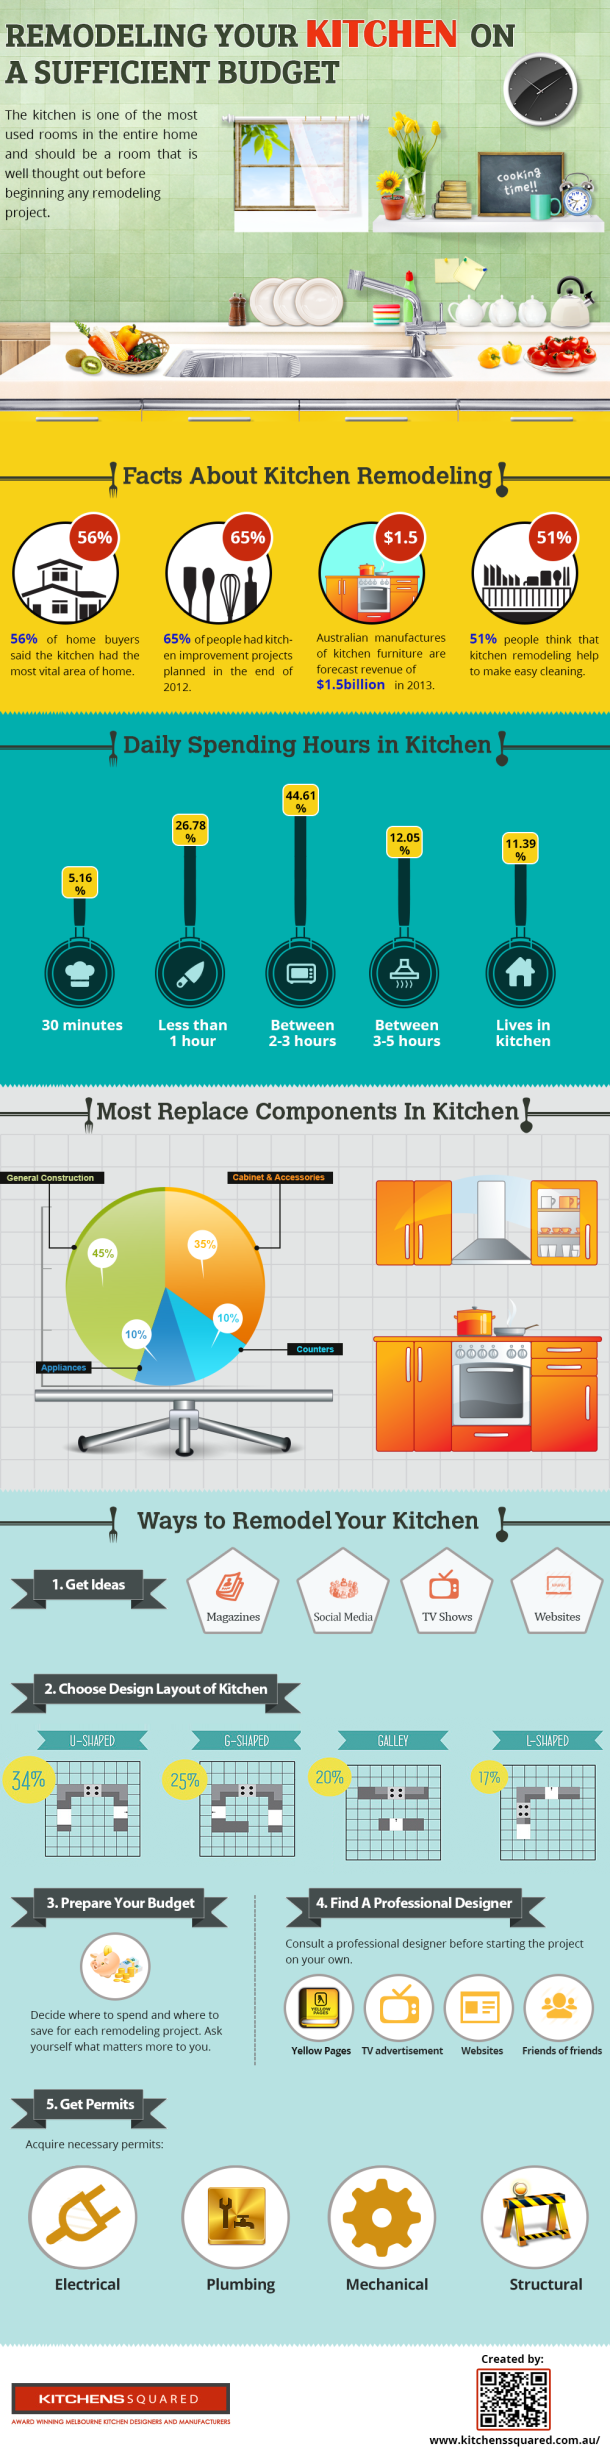 Remodeling Your Kitchen On A Sufficient Budget [#INFOGRAPHIC ...